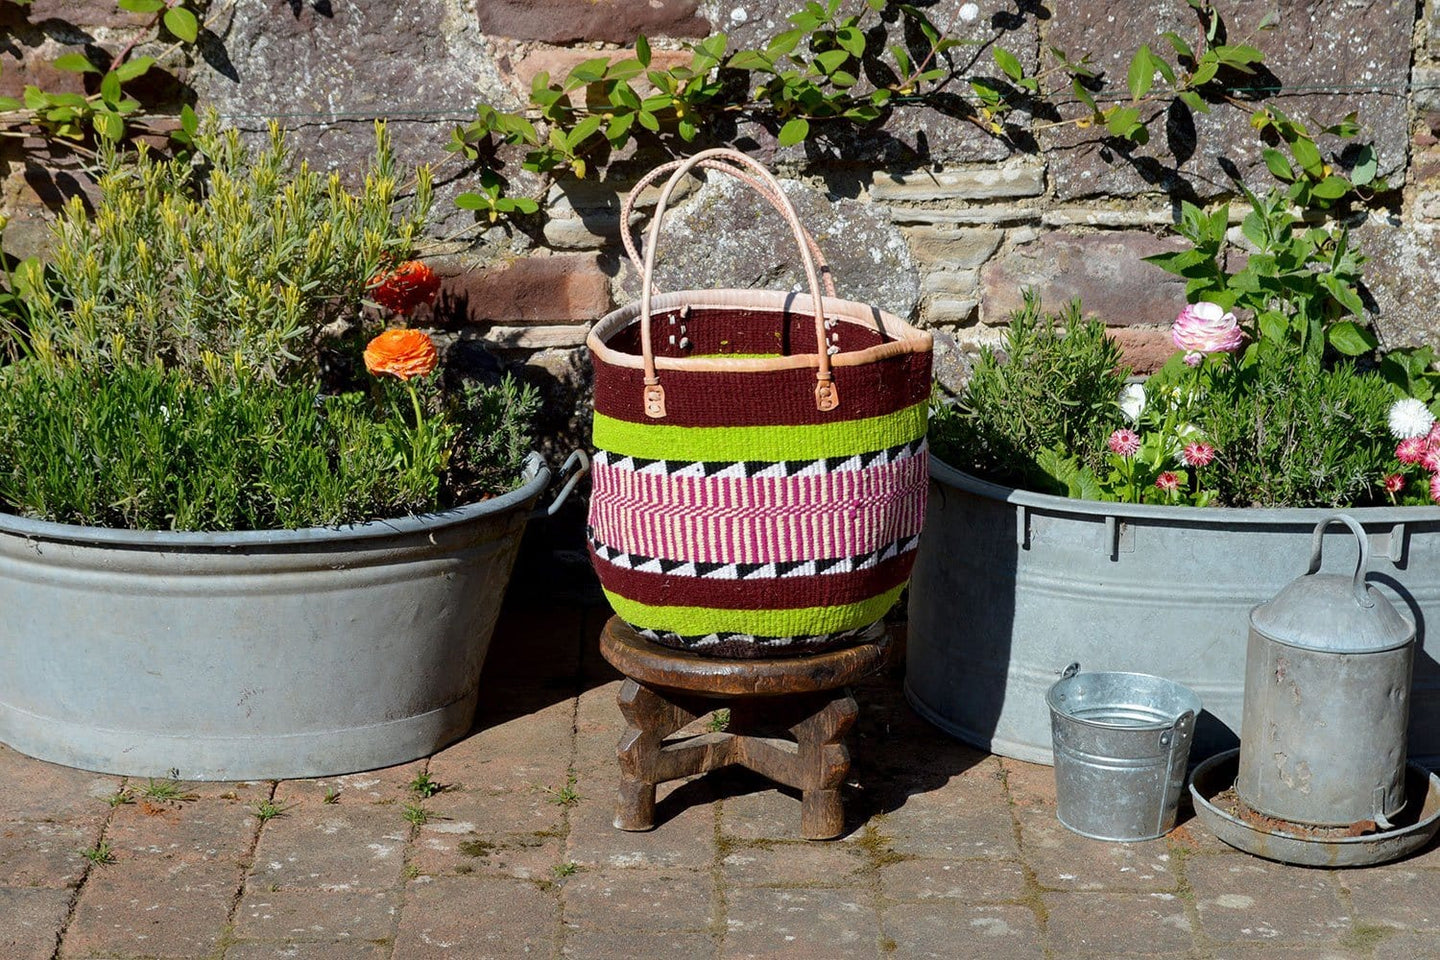 Woollen Kiondo Basket, Red, Green and Pink Stripes